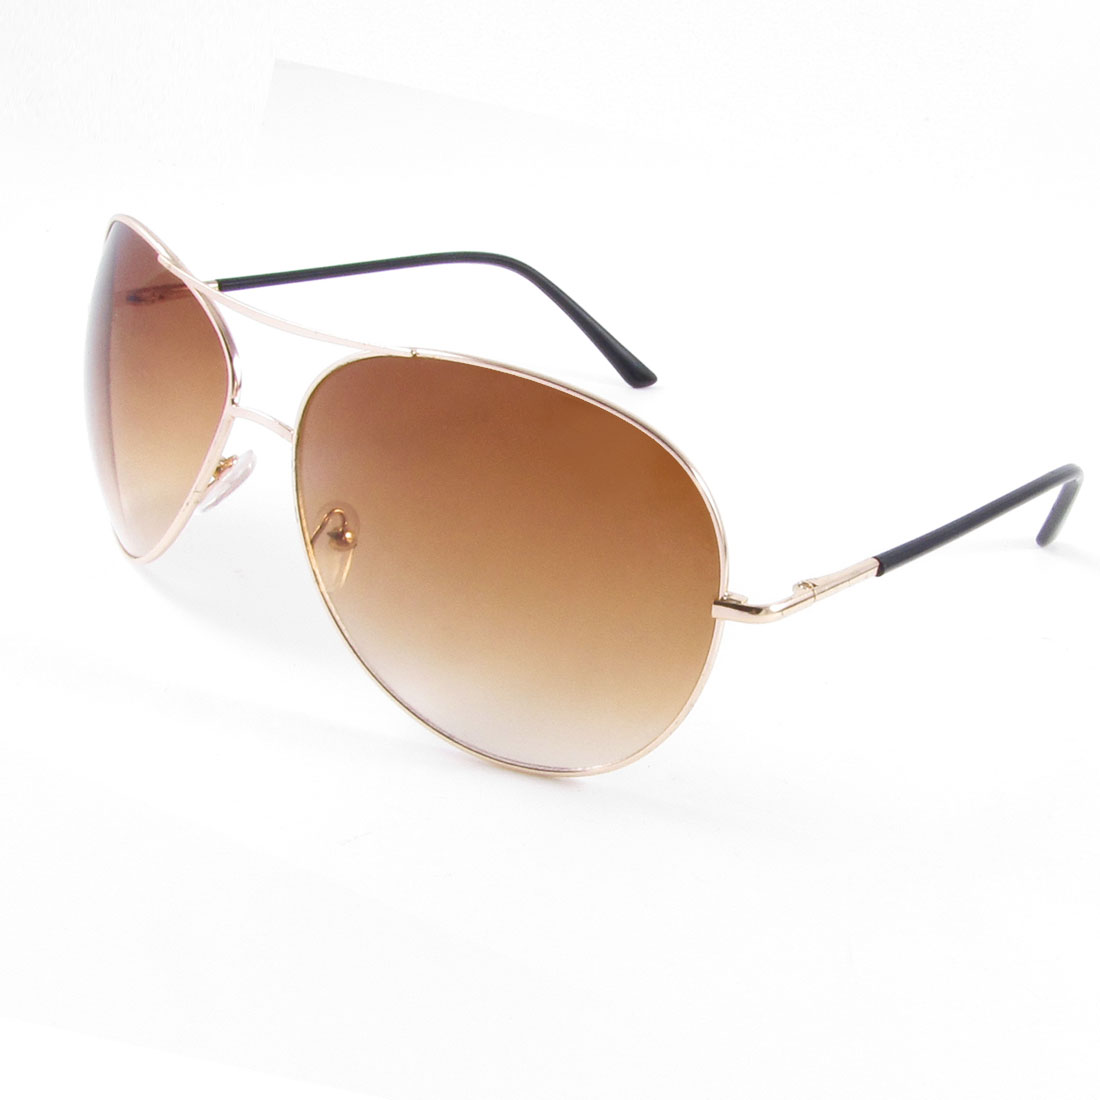 Metal Arms Full Rim Frame Teardrop Shaped Colored Lens Sunglasses for Woman